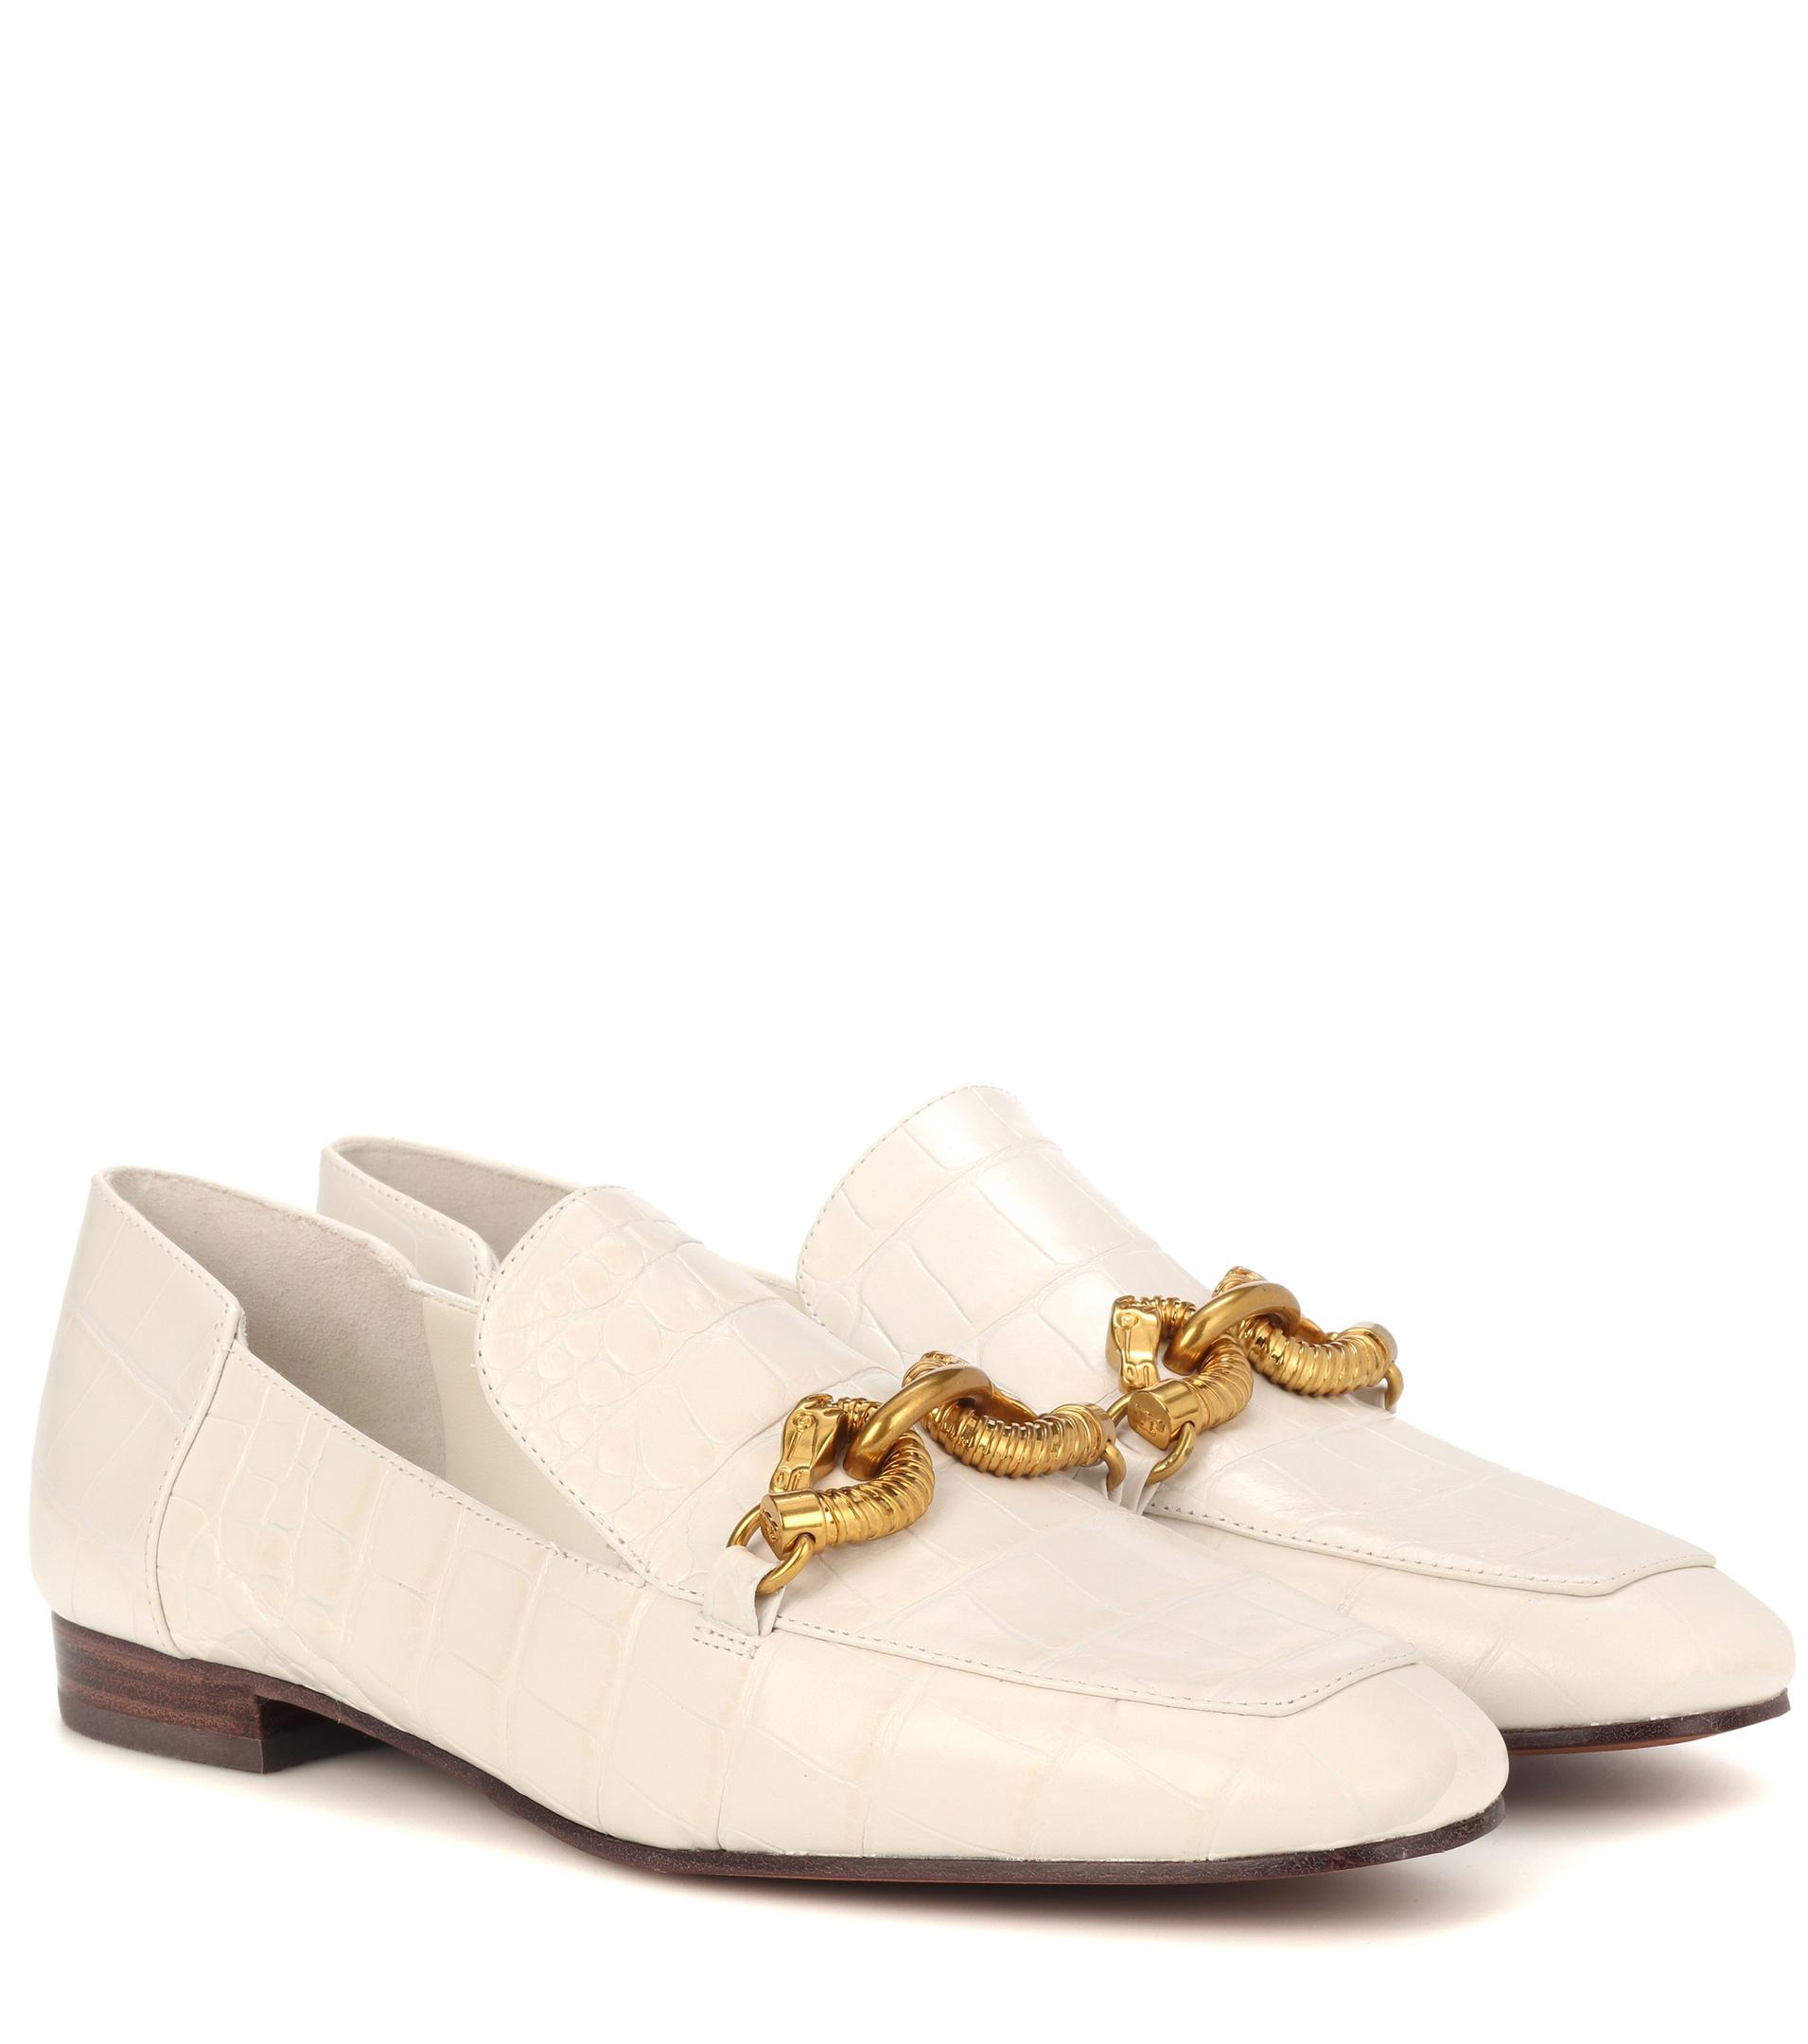 7fc2a1ca9e6 Lyst - Tory Burch Jessa Leather Loafers in White